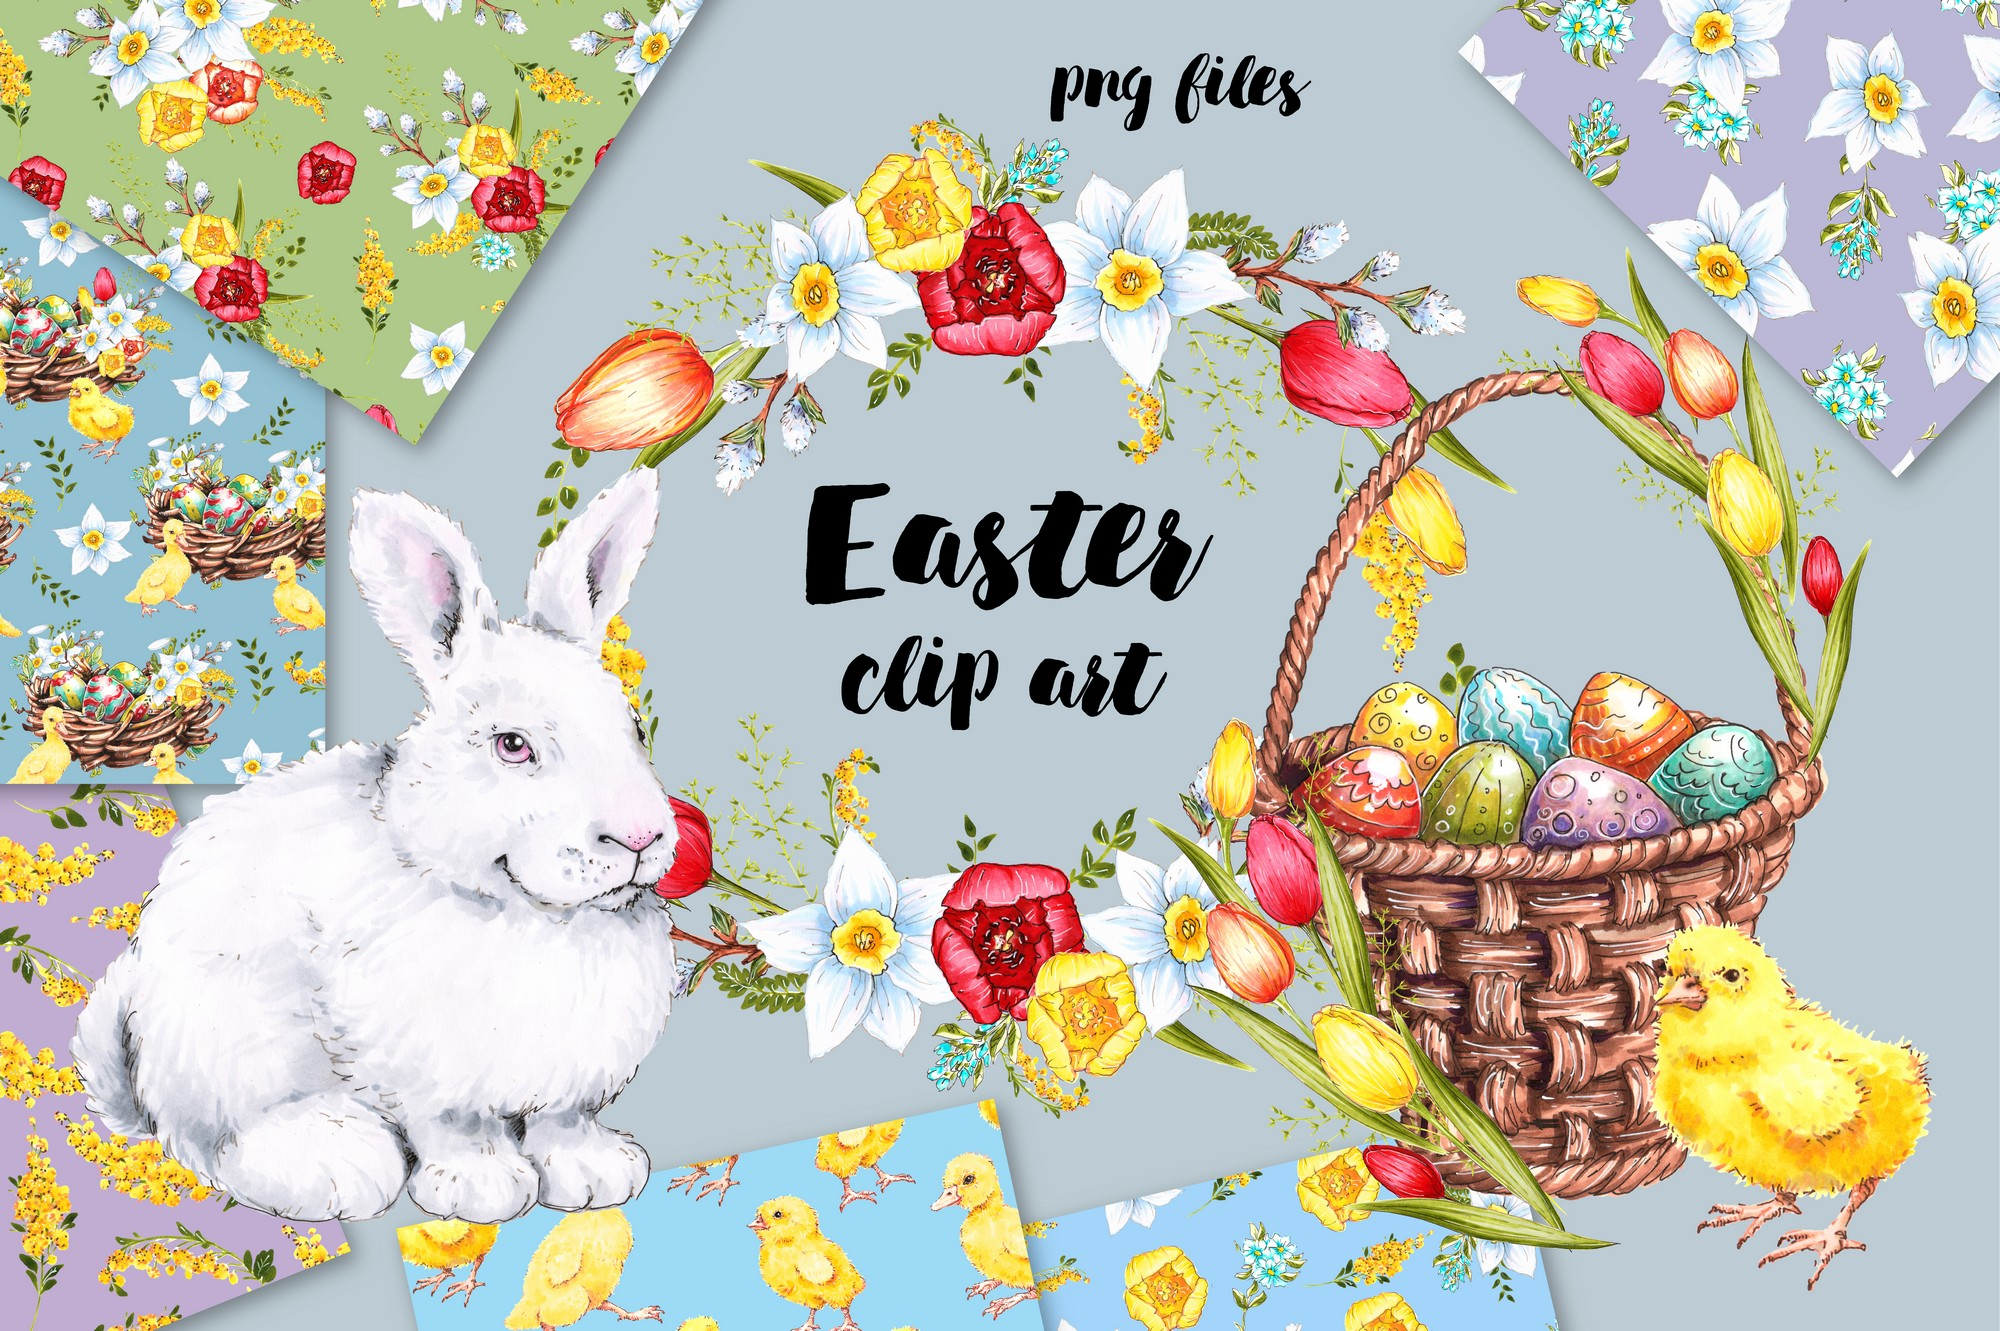 Download Free Easter Design Bundle Graphic By Nicjulia Creative Fabrica for Cricut Explore, Silhouette and other cutting machines.